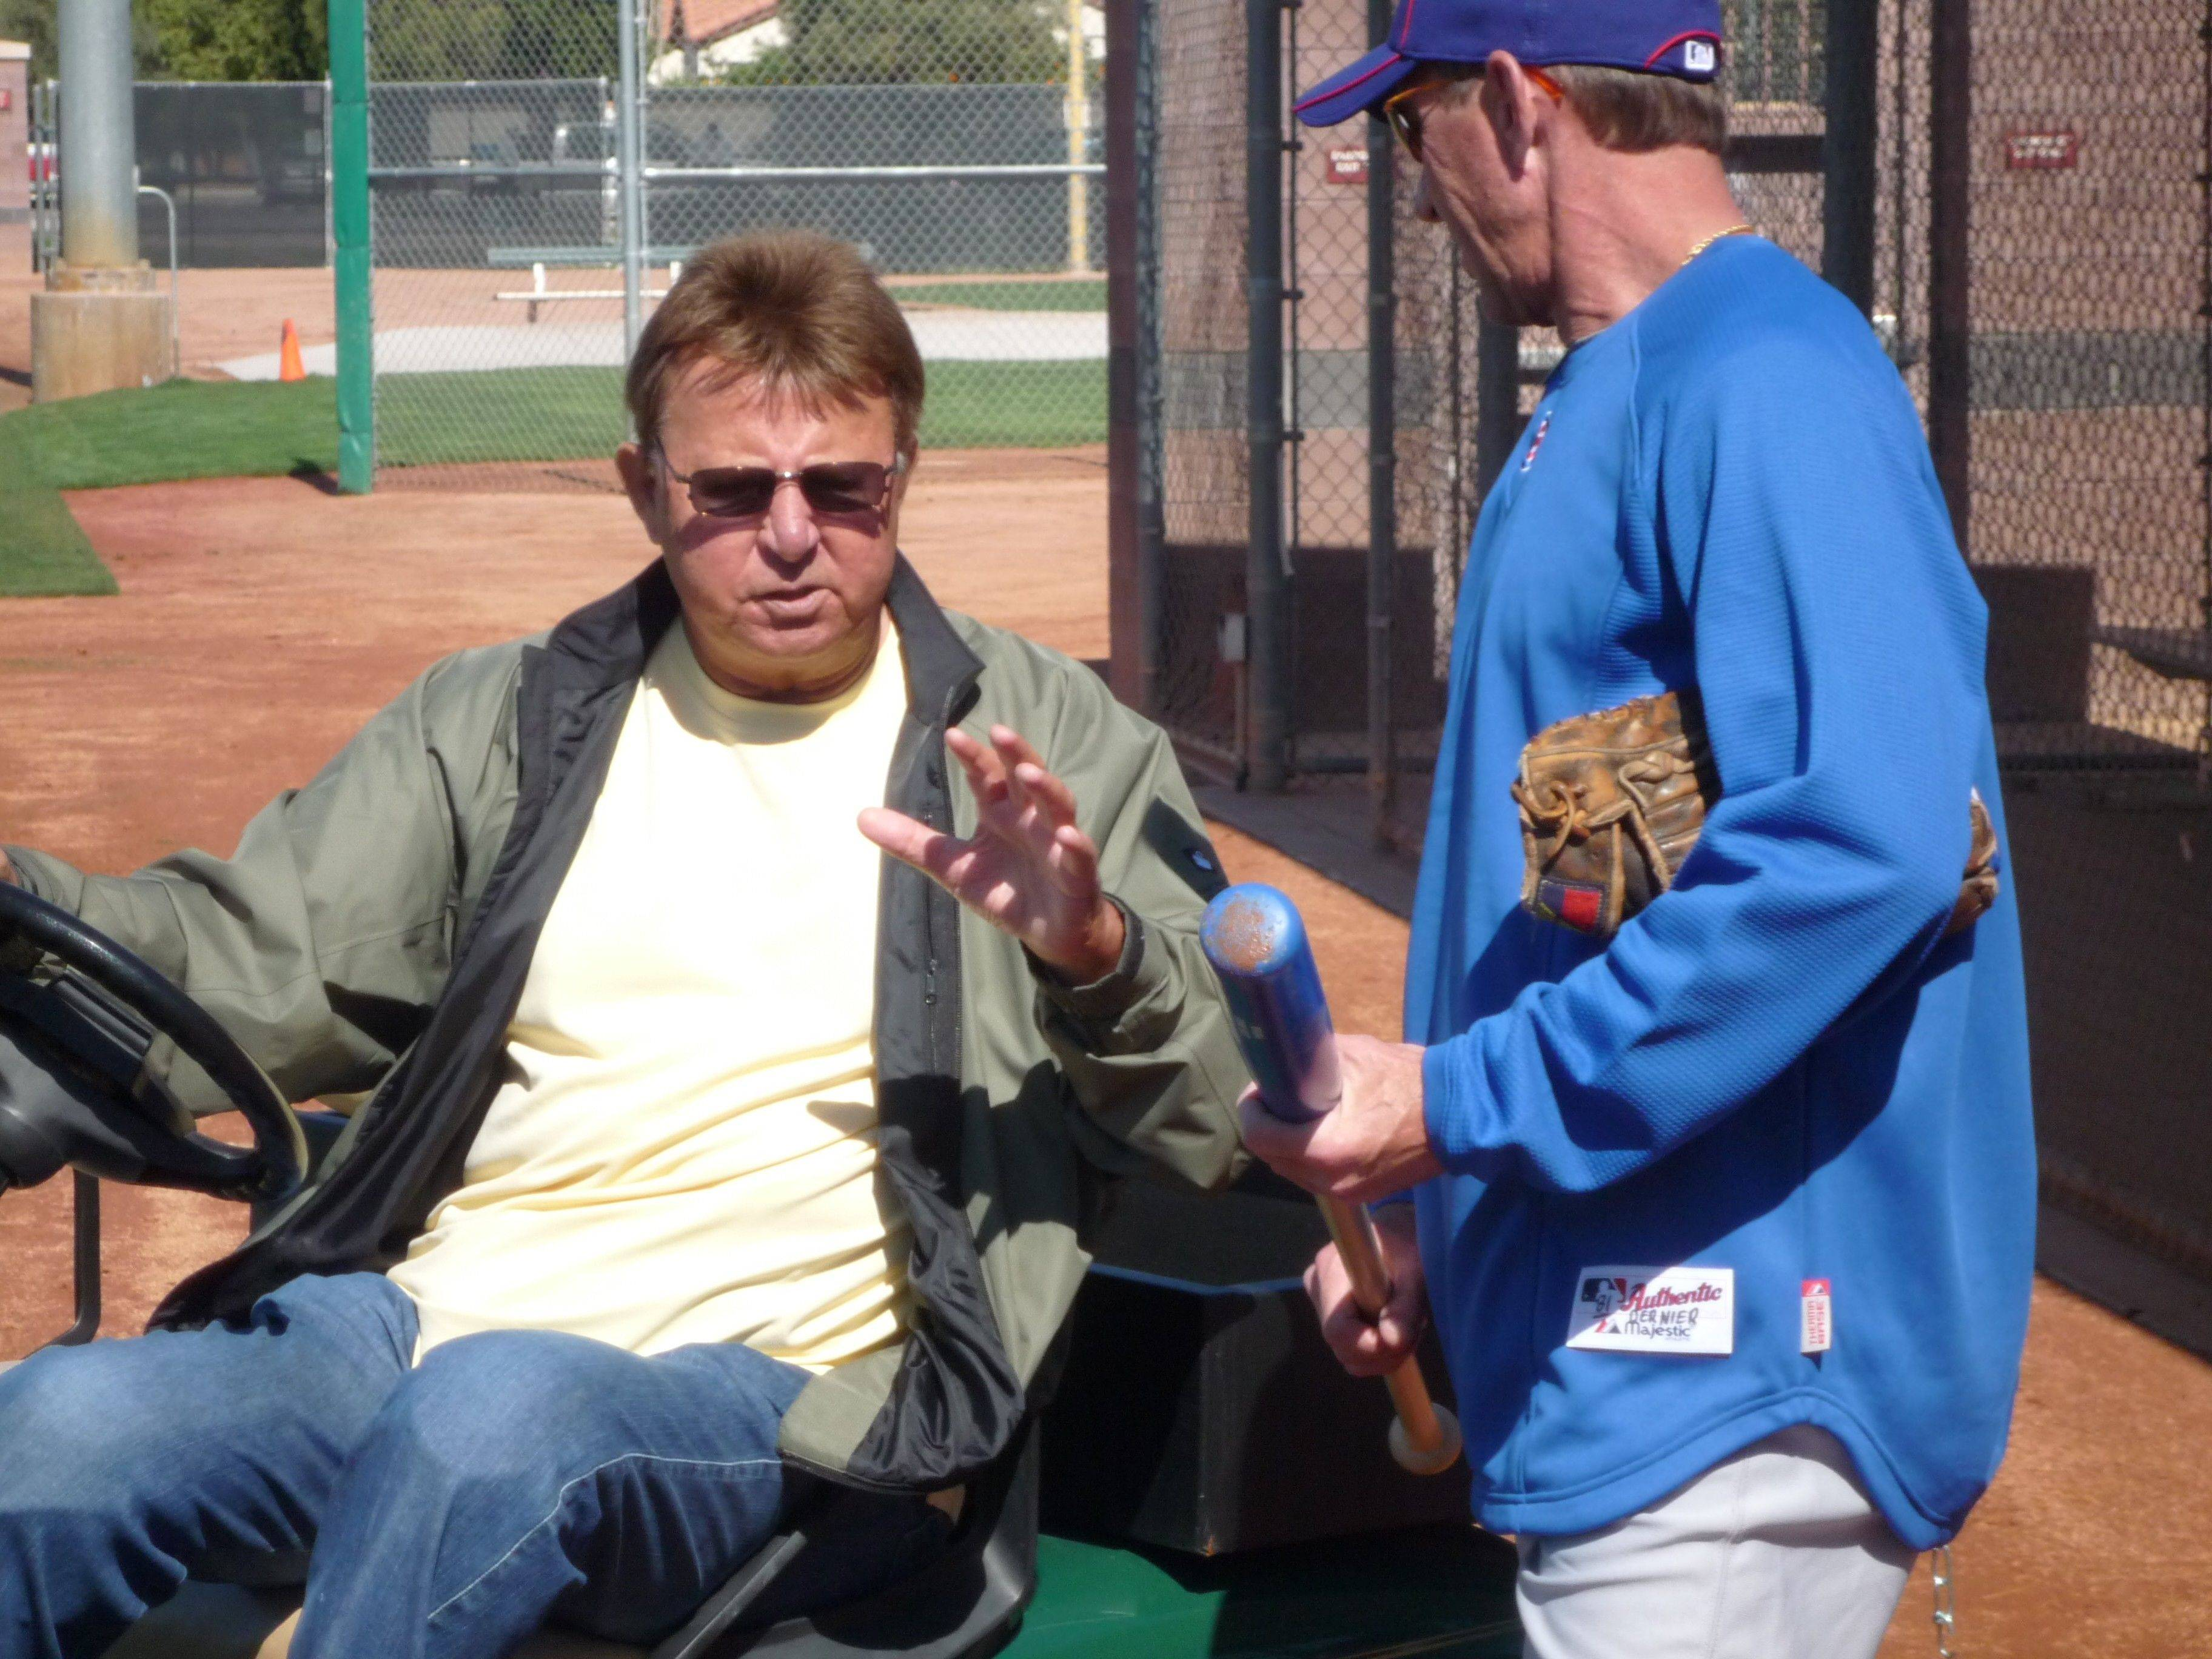 After Ron Santo made the rounds at Fitch Park last spring to chat with Cubs outfield instructor Bob Dernier and others, he sat down with Daily Herald writer Bruce Miles to talk about how excited he was to turn 70 and having beaten the odds.